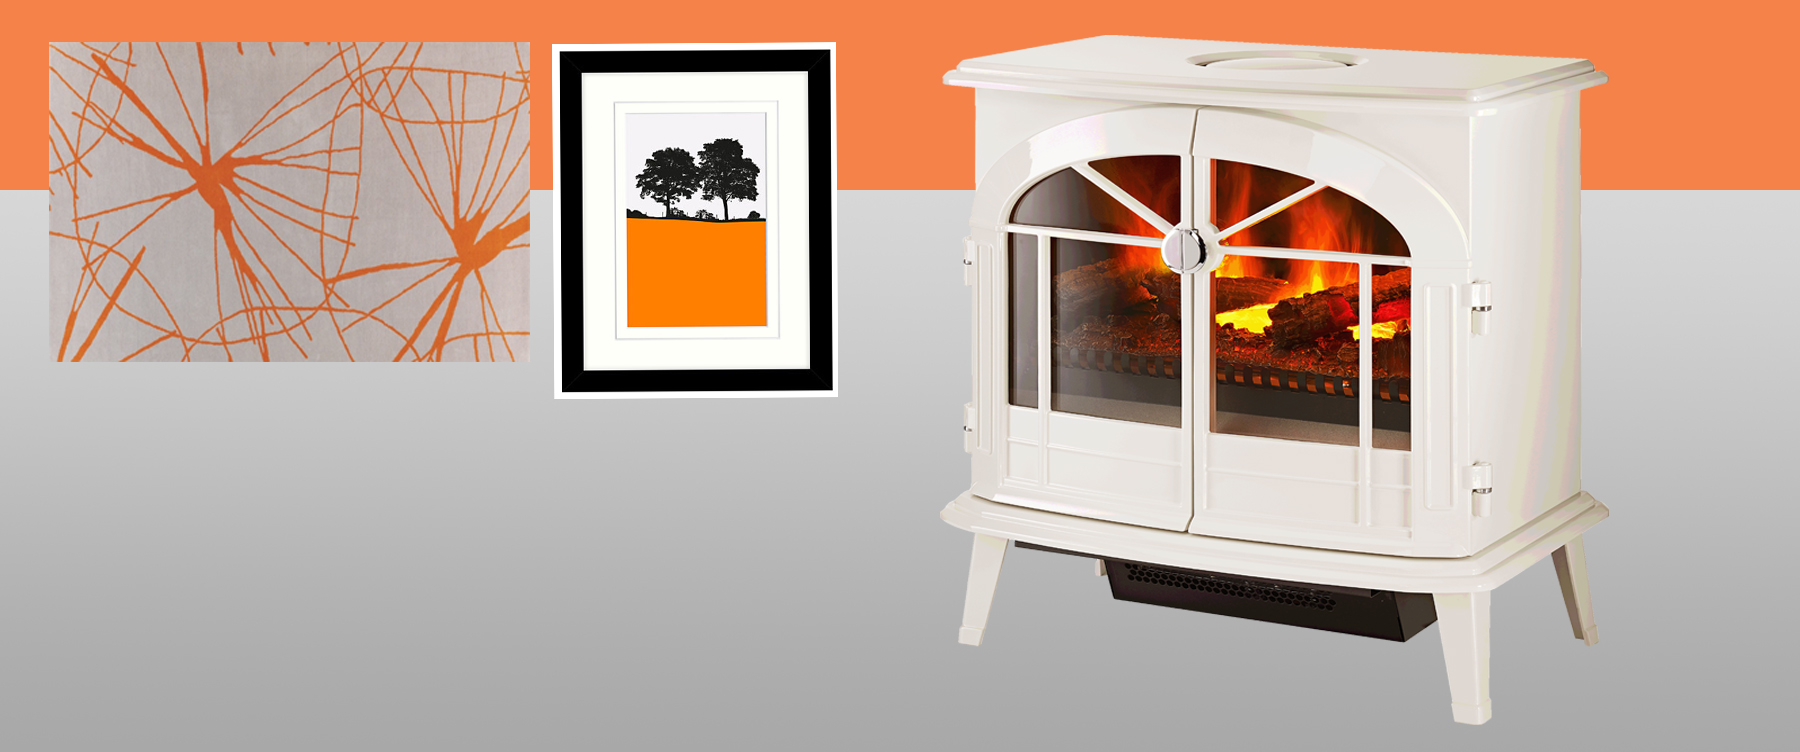 Meribel Opti-myst electric stove for an orange and grey August